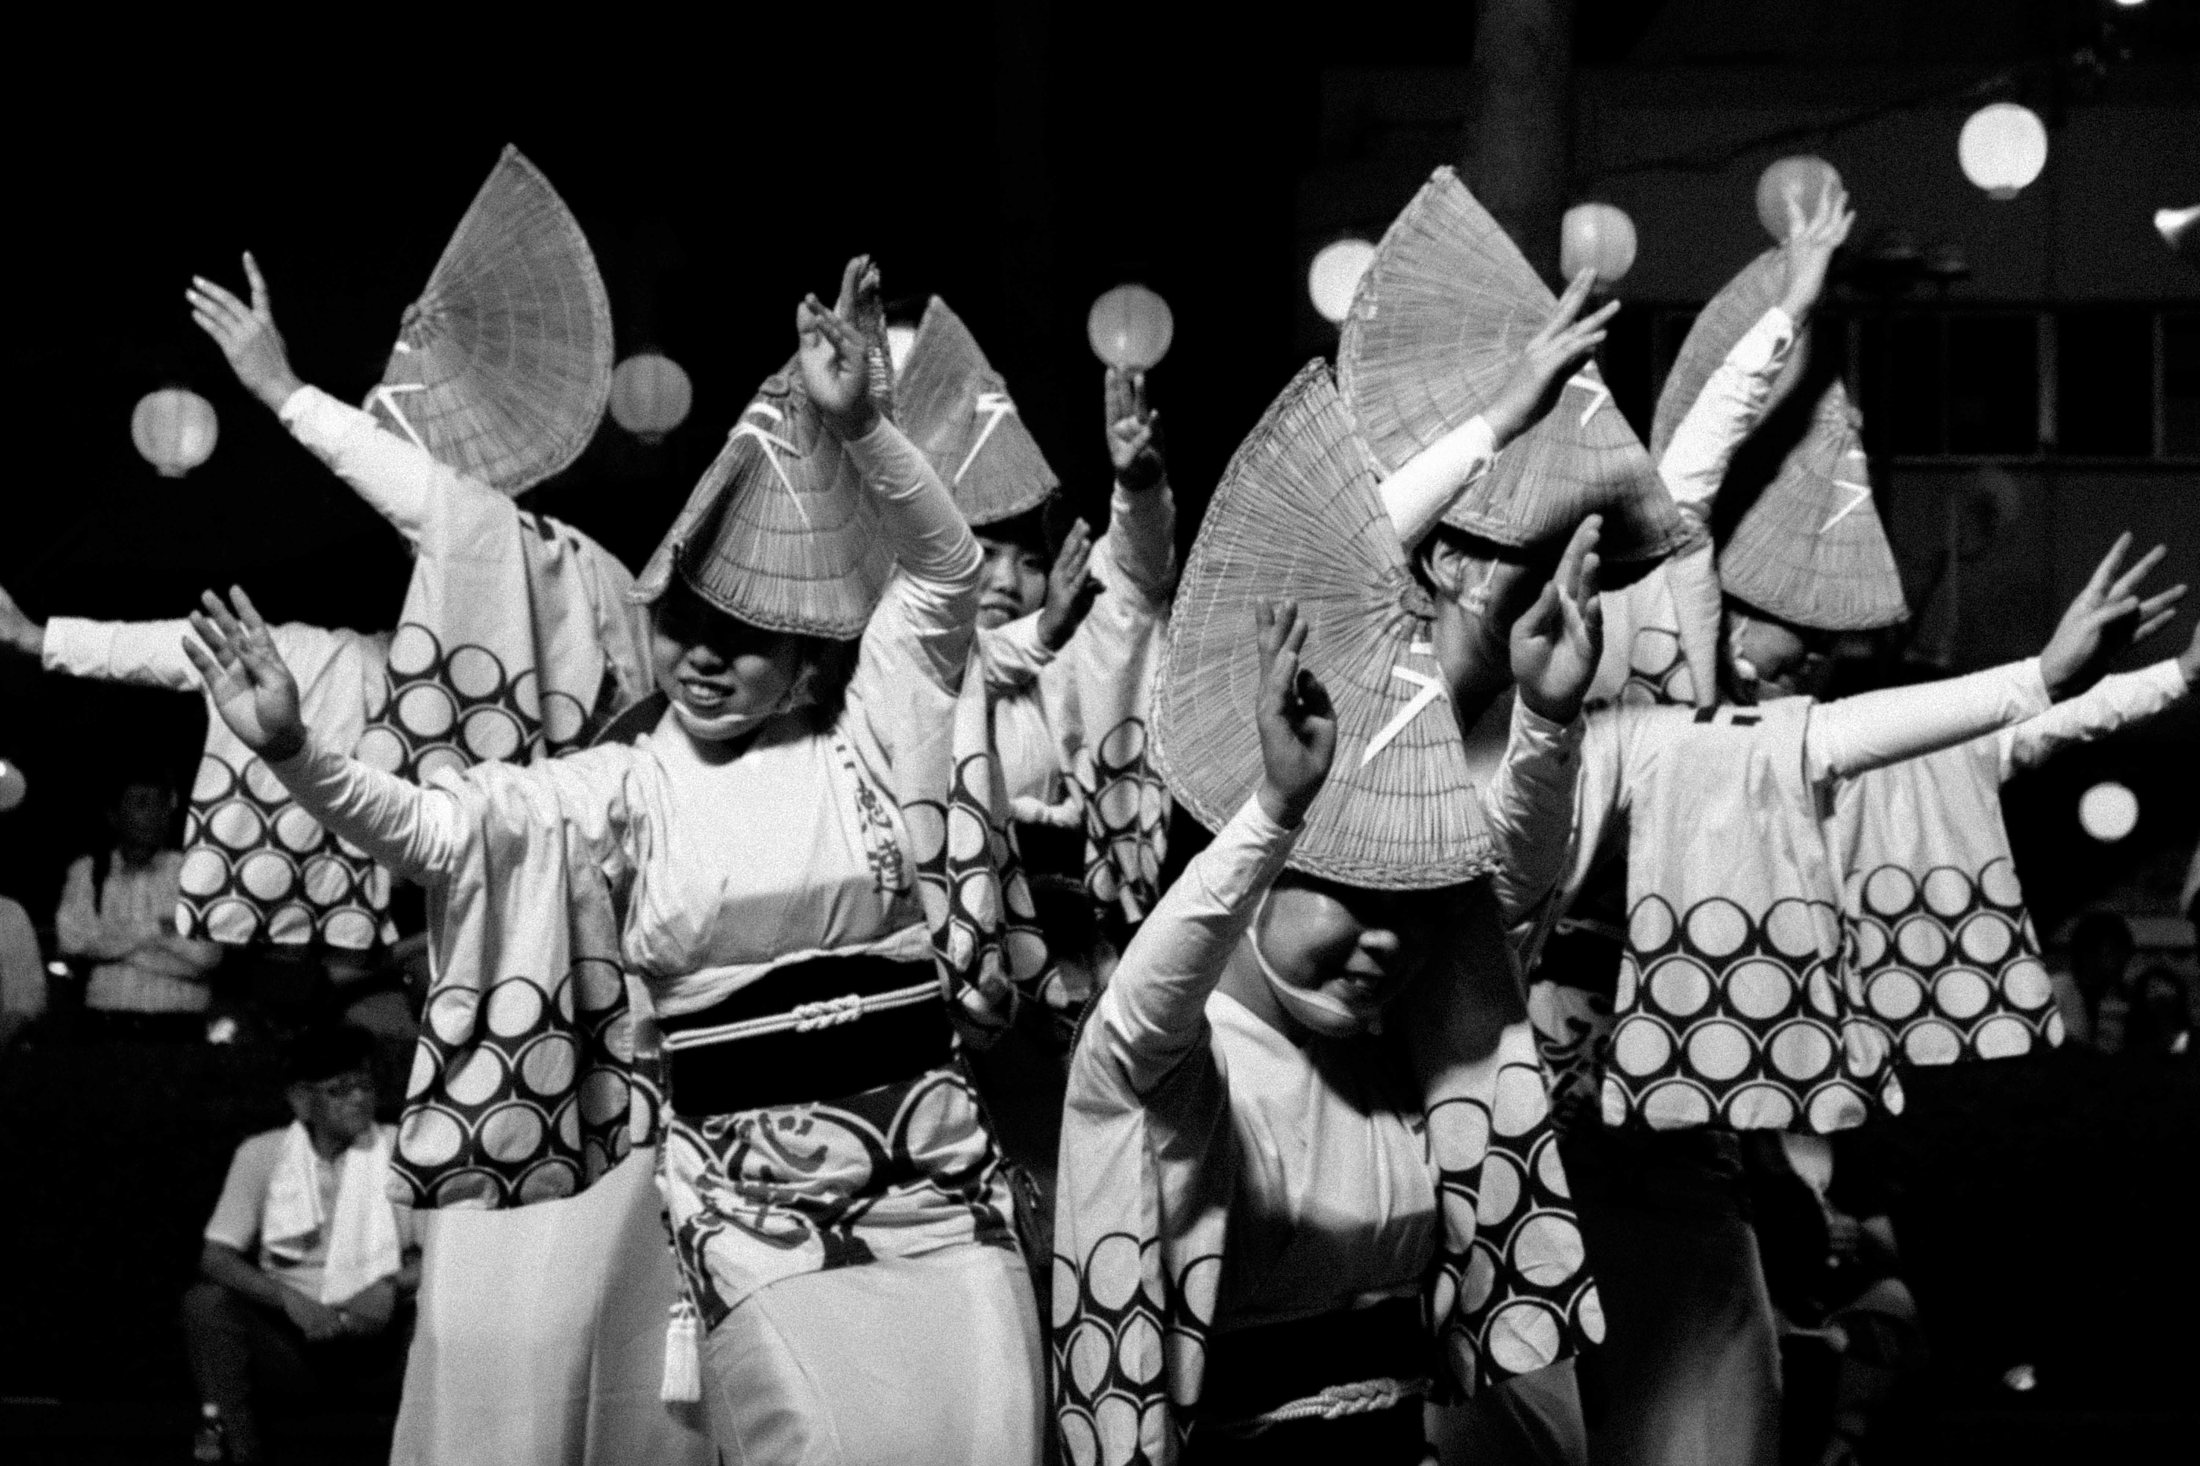 Tokushima Awa Odori: The Dance Of Fools